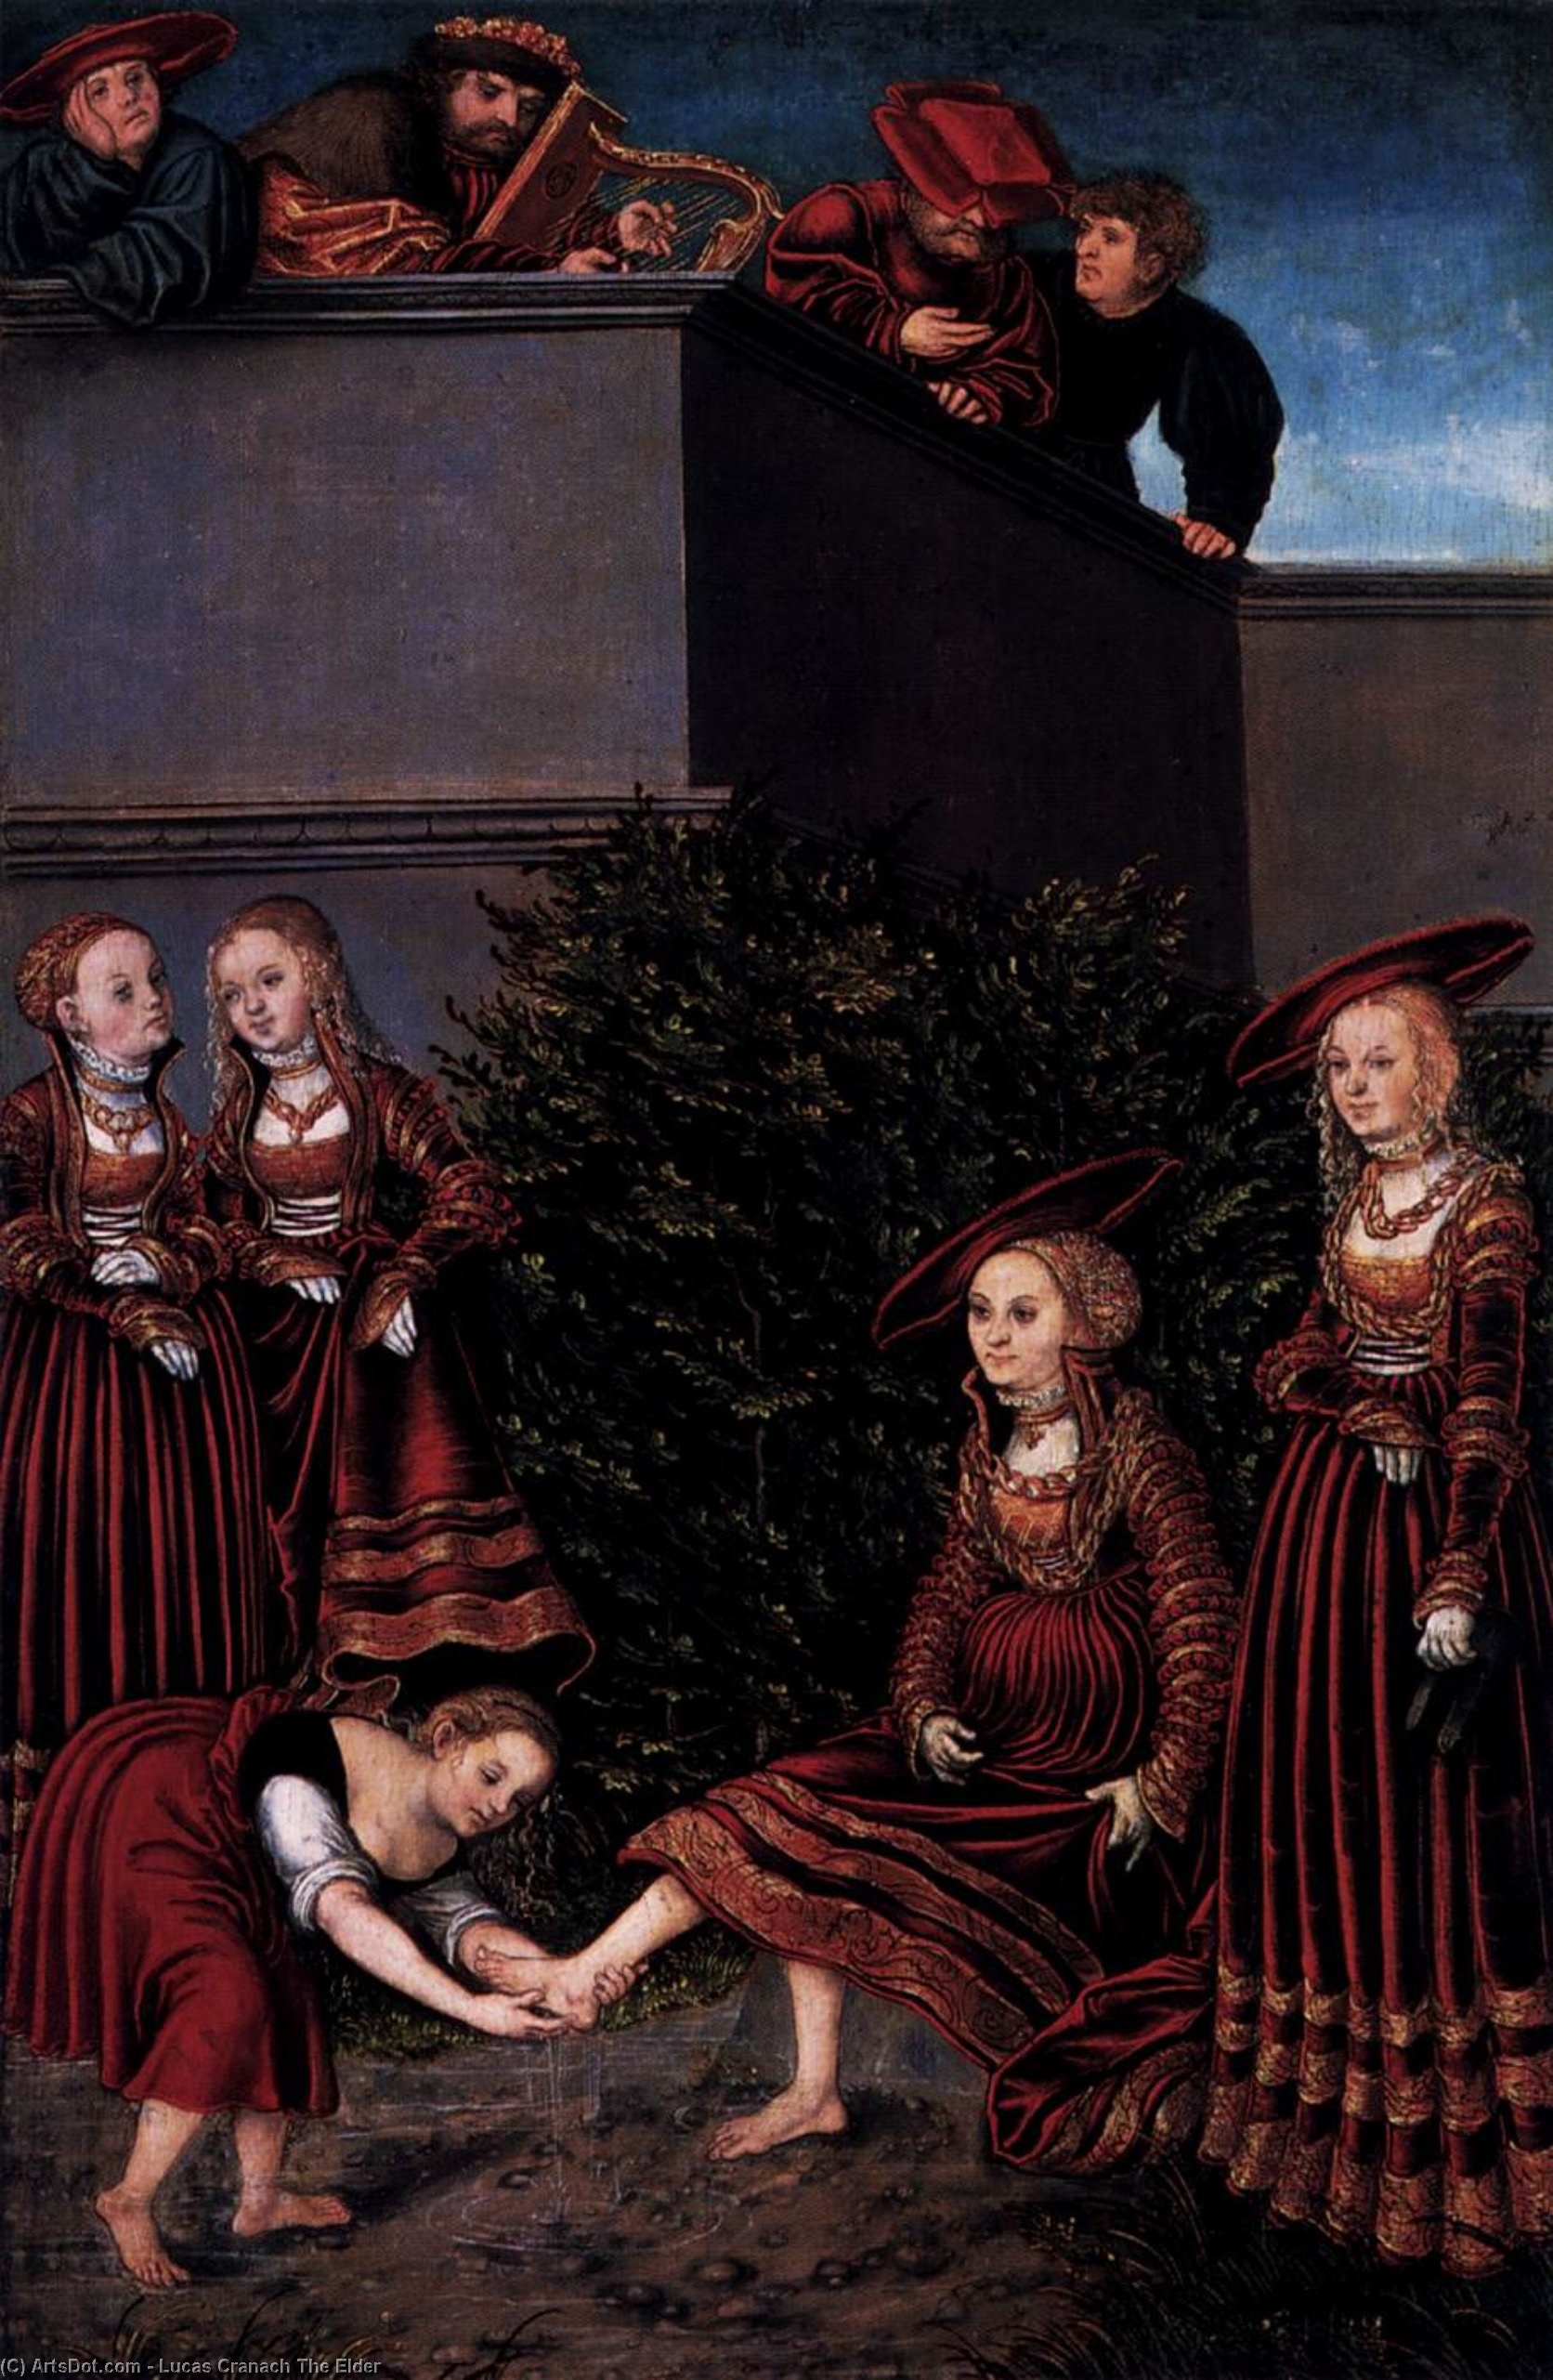 david e bathsheba, óleo sobre painel por Lucas Cranach The Elder (1472-1553, Germany)